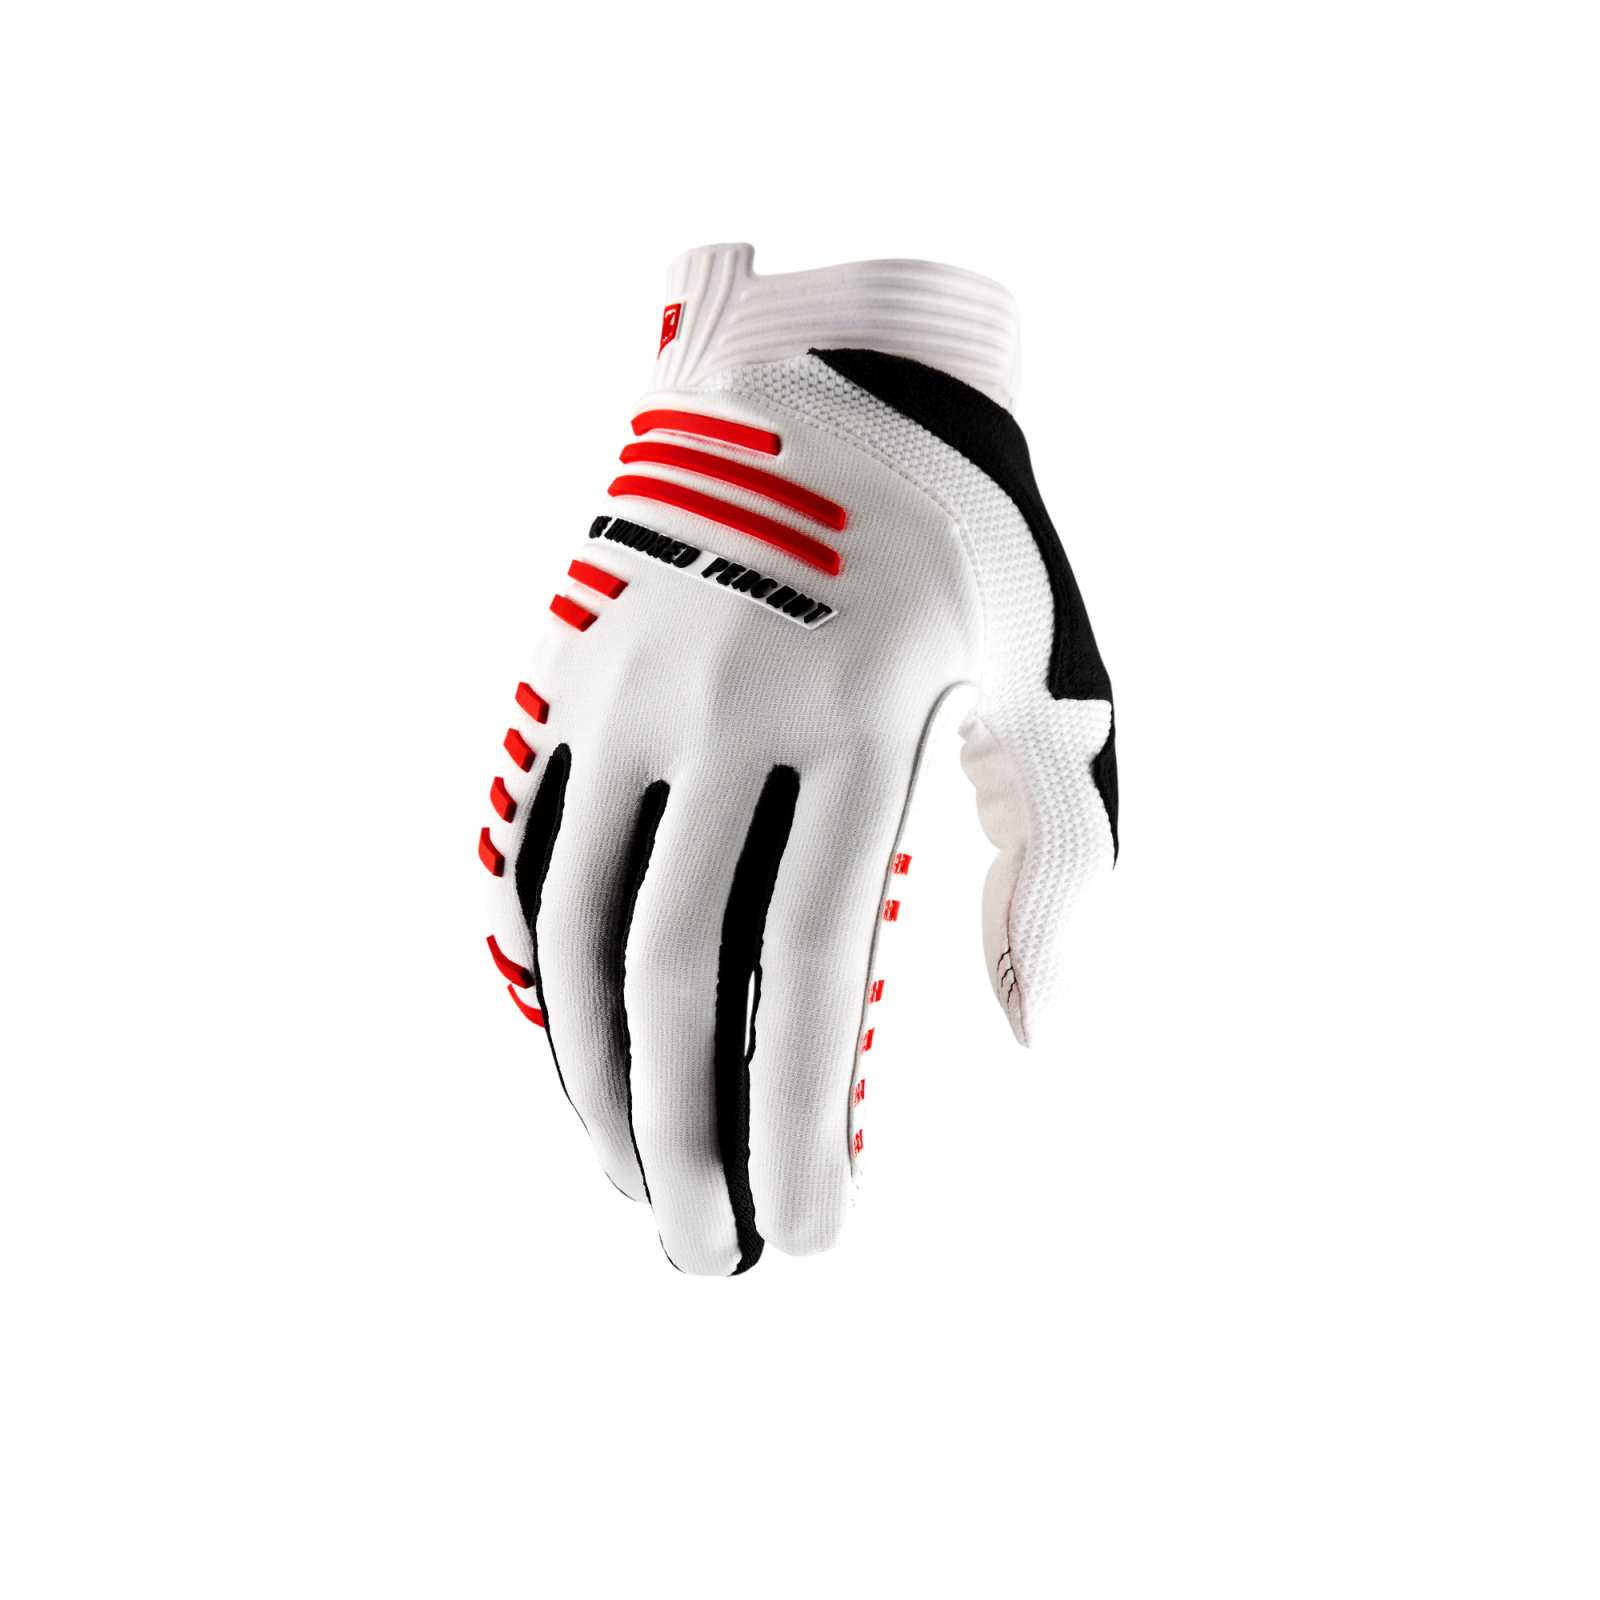 r-core-glove-white-100-percent